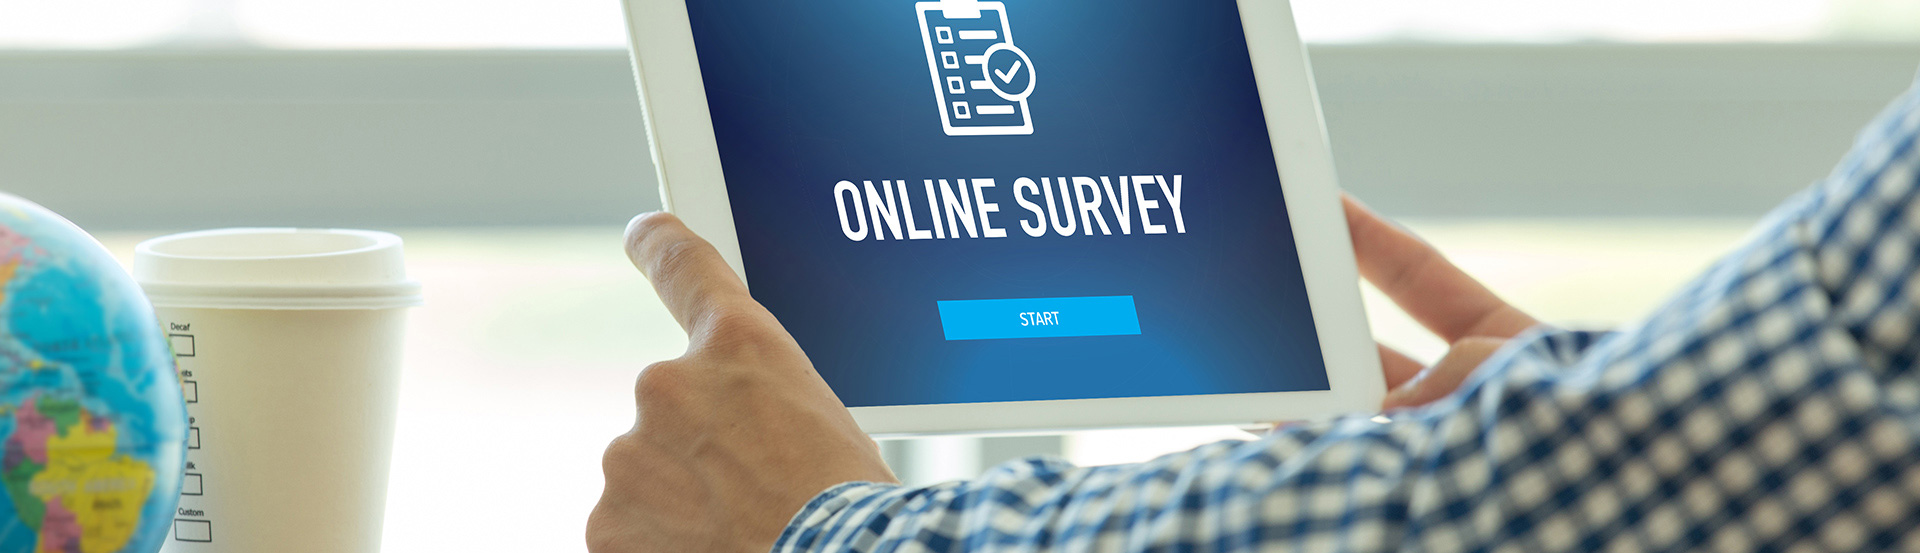 Guide to online survey definition of goals